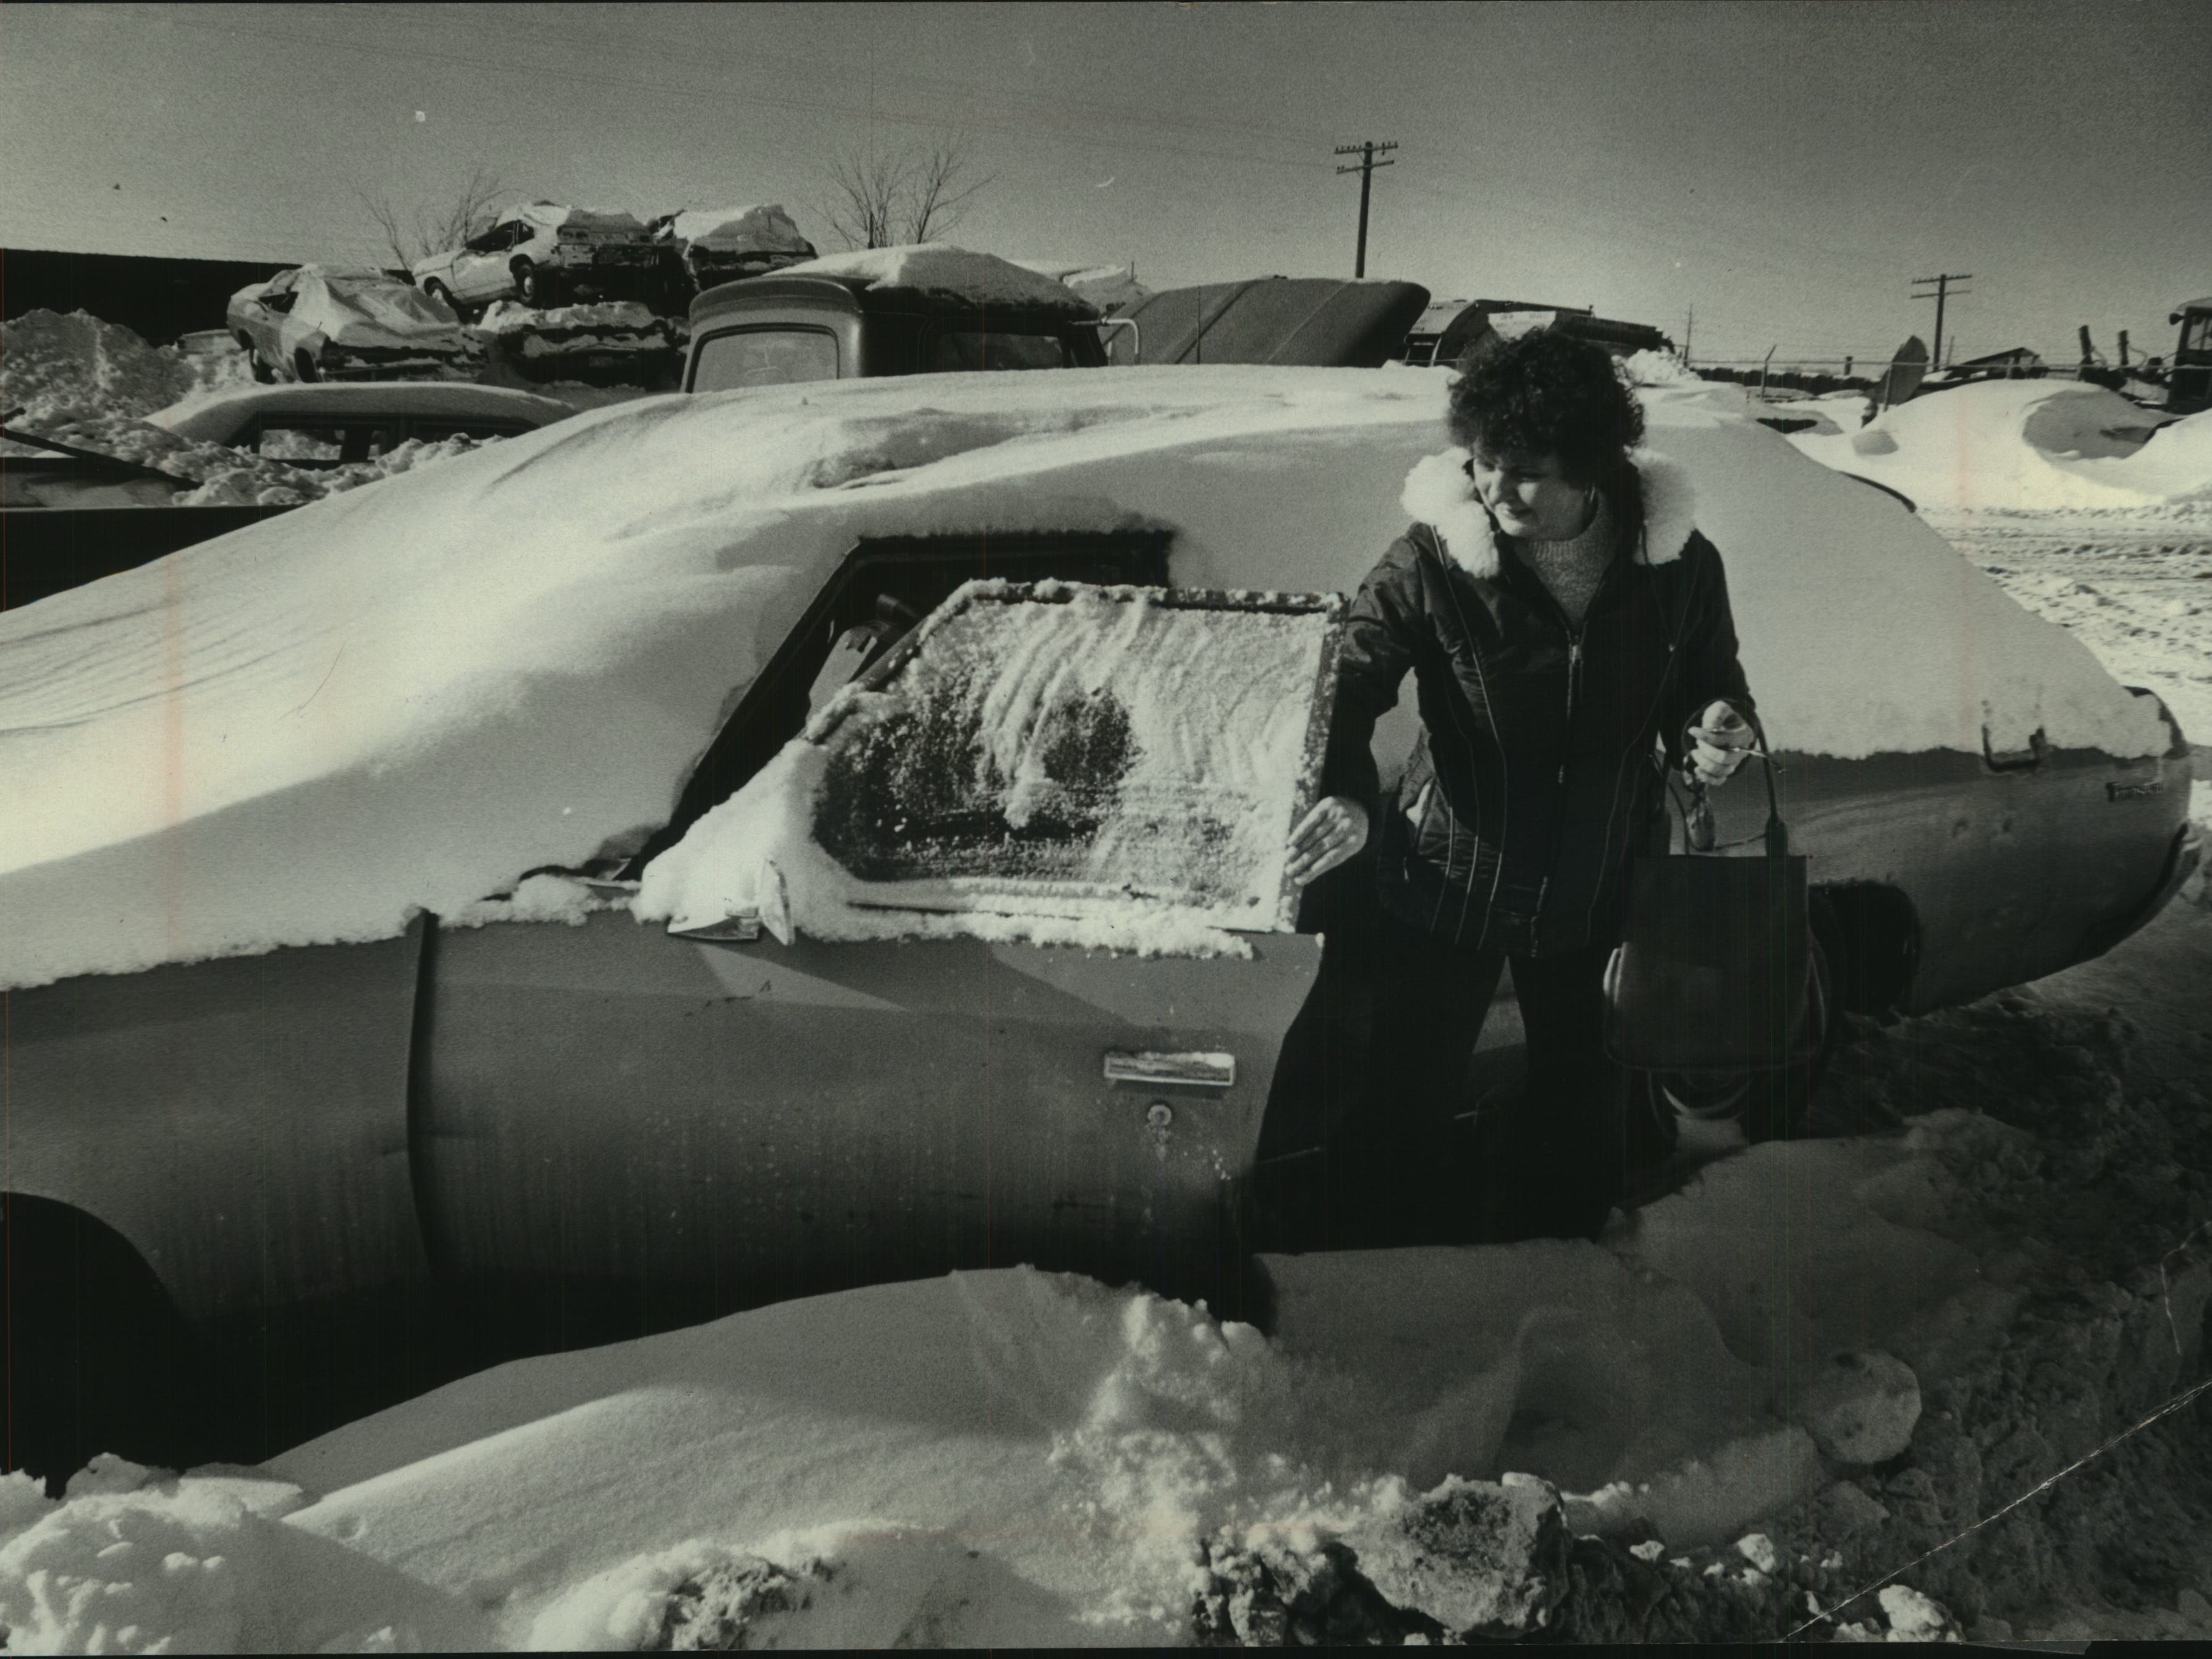 Lucy Krajna checks her car after it was towed to a lot at 30th Street and Ruby Avenue on Jan. 25. 1979. Krajna's car had been towed to the lot after city workers determined it had been abandoned during one of the major snowstorms that hit the city that month; Kracja said the car had been left because a battery cable had burned out in an attempt to drive it in the heavy, wet snow. (She paid the $30 fine, plus $2 a day for when the car was in the lot.) This photo was published in the Jan. 26, 1979, Milwaukee Journal.